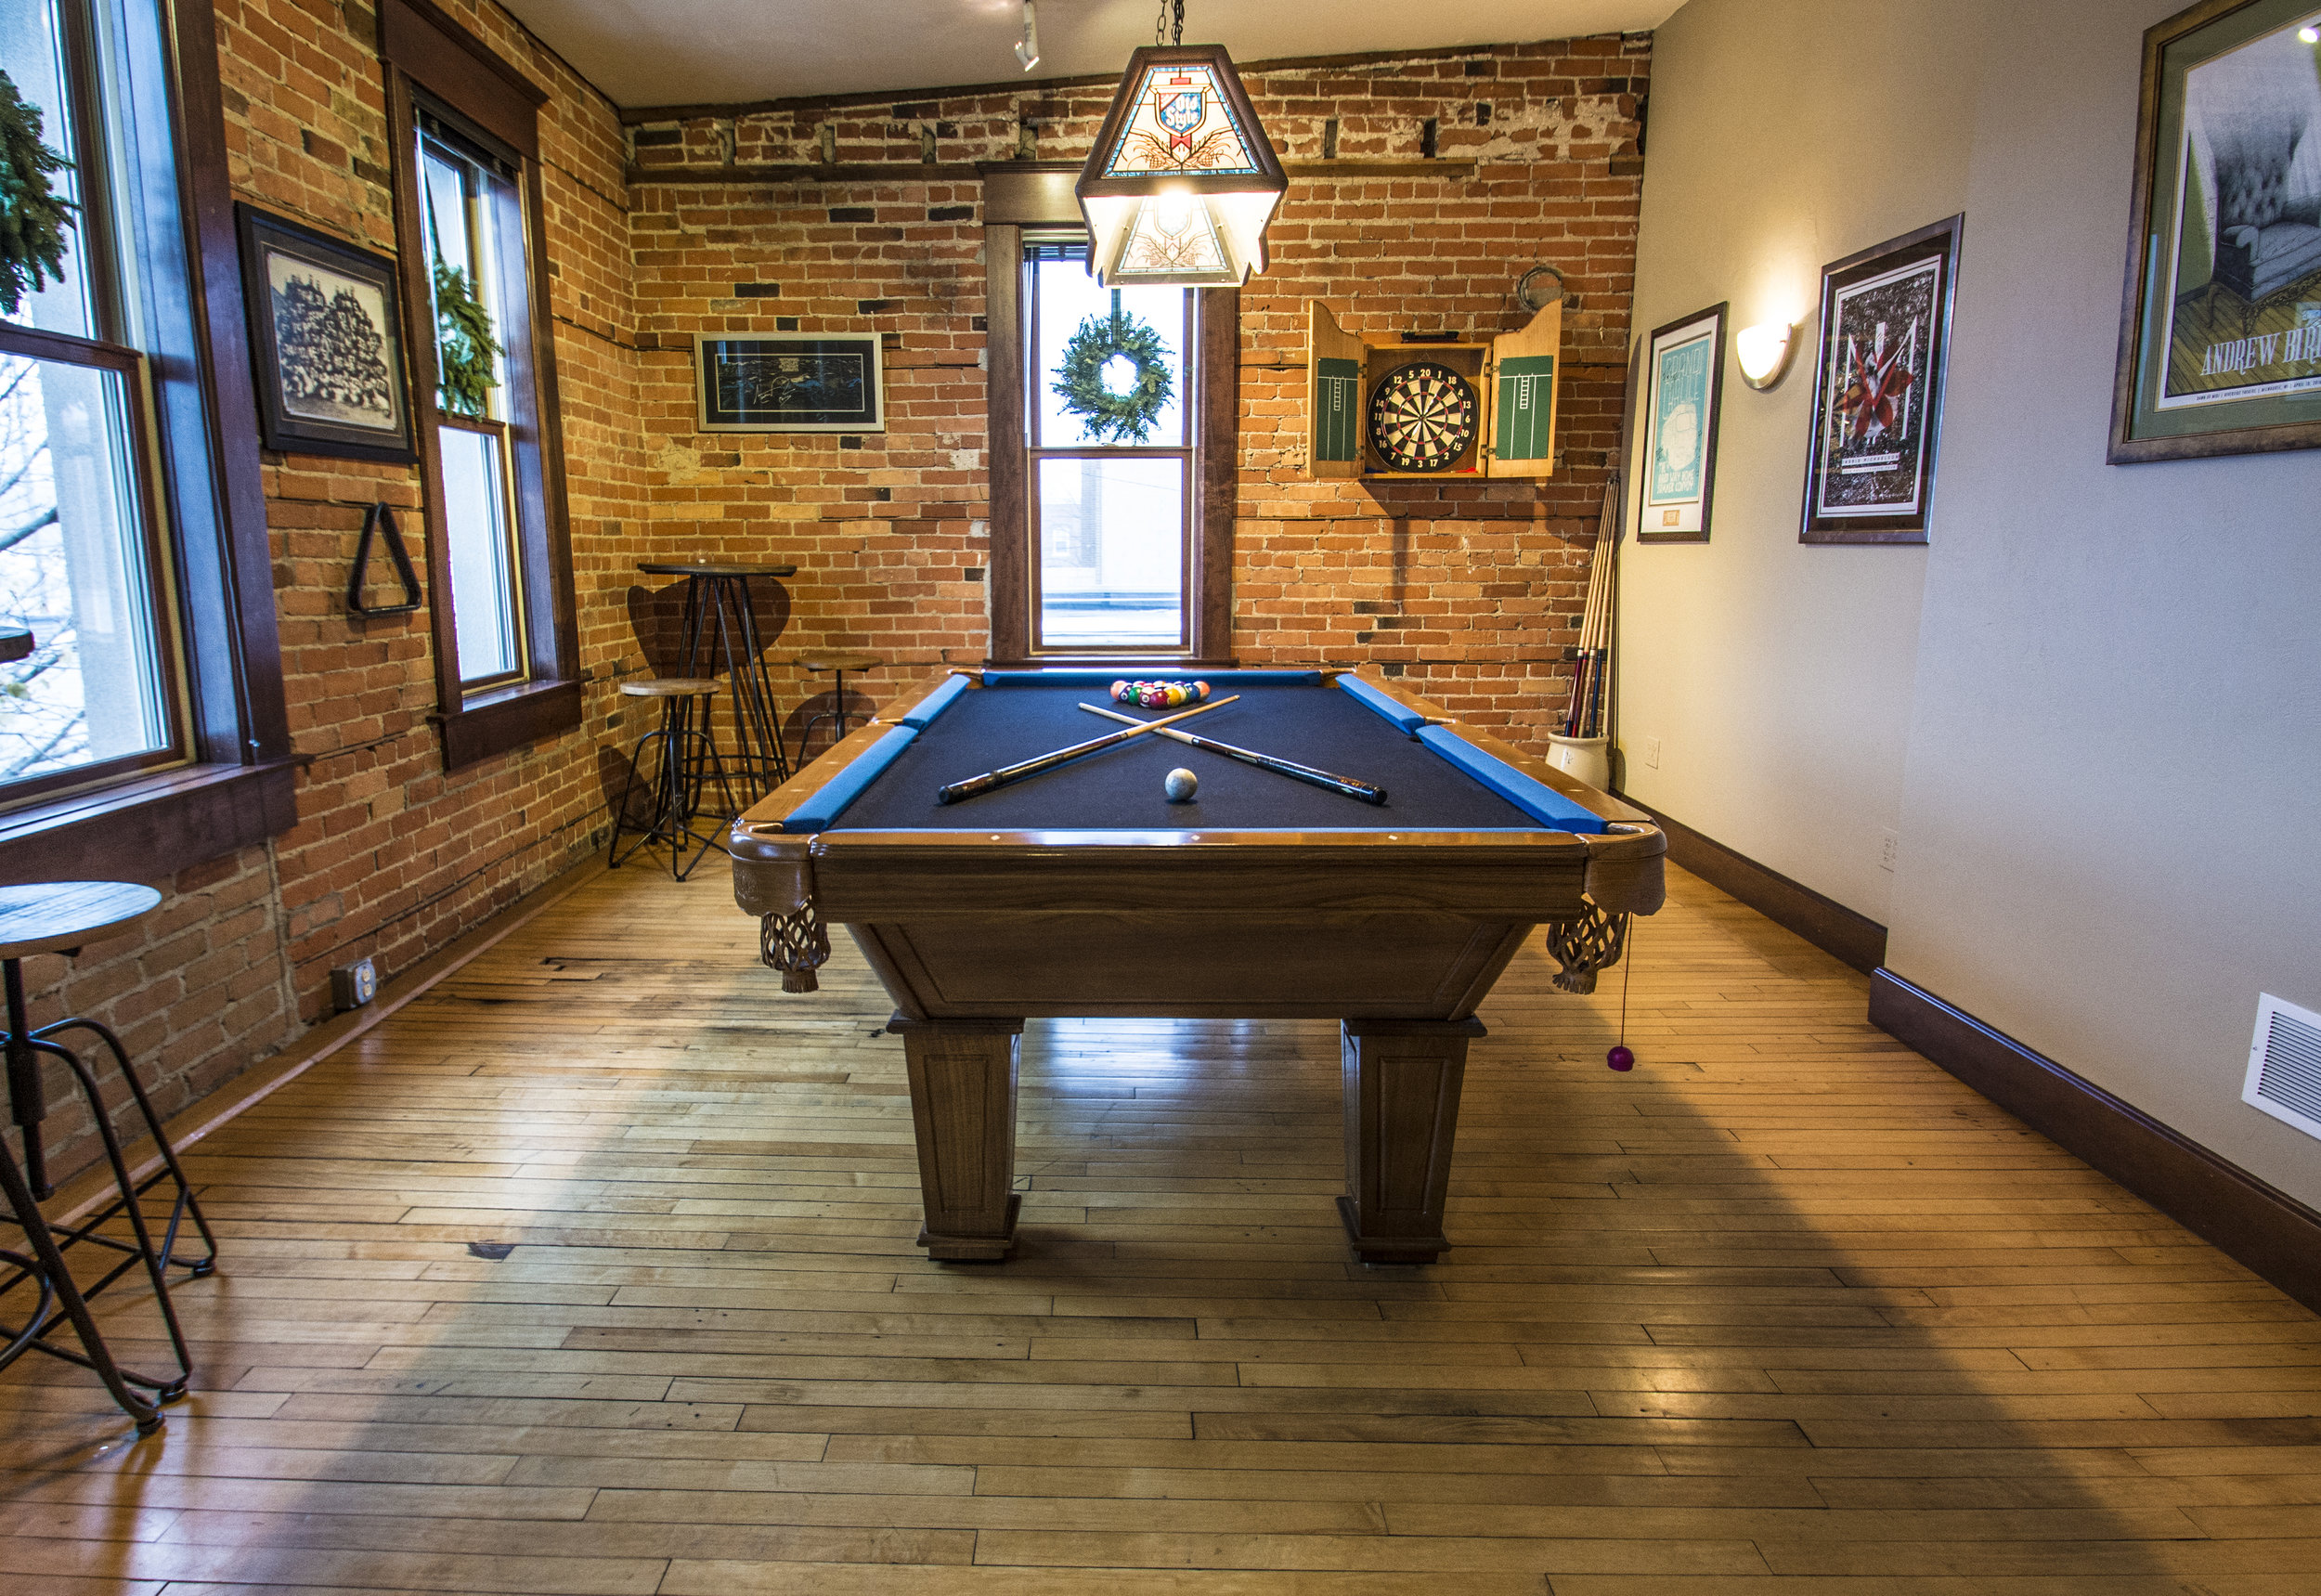 GamING  - Either sit down with some classic competitions such as chess, checkers or backgammon, or enjoy sticks or stakes with billiards or our various poker tables.